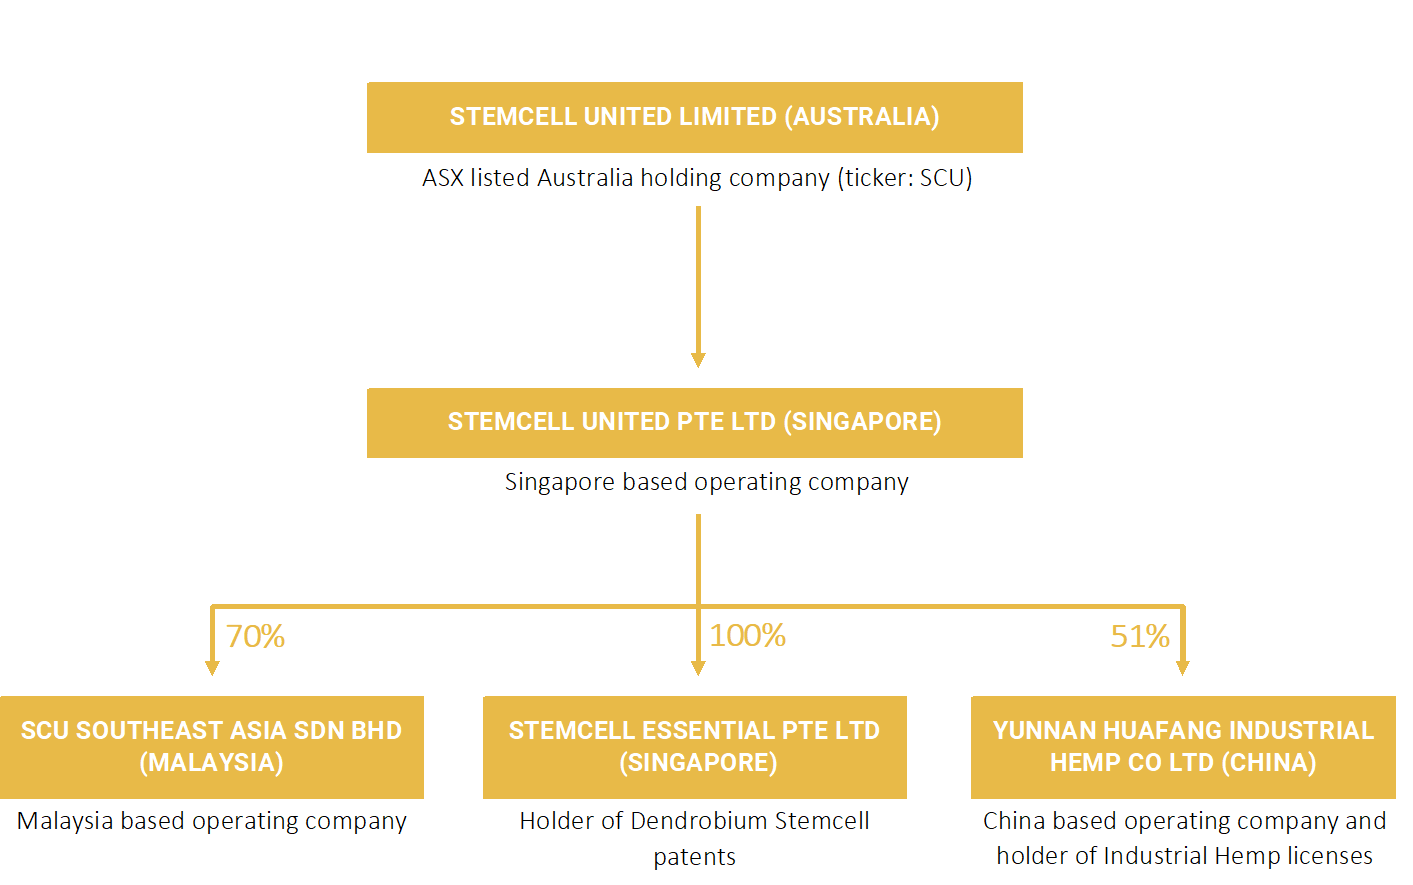 shareholding-structure